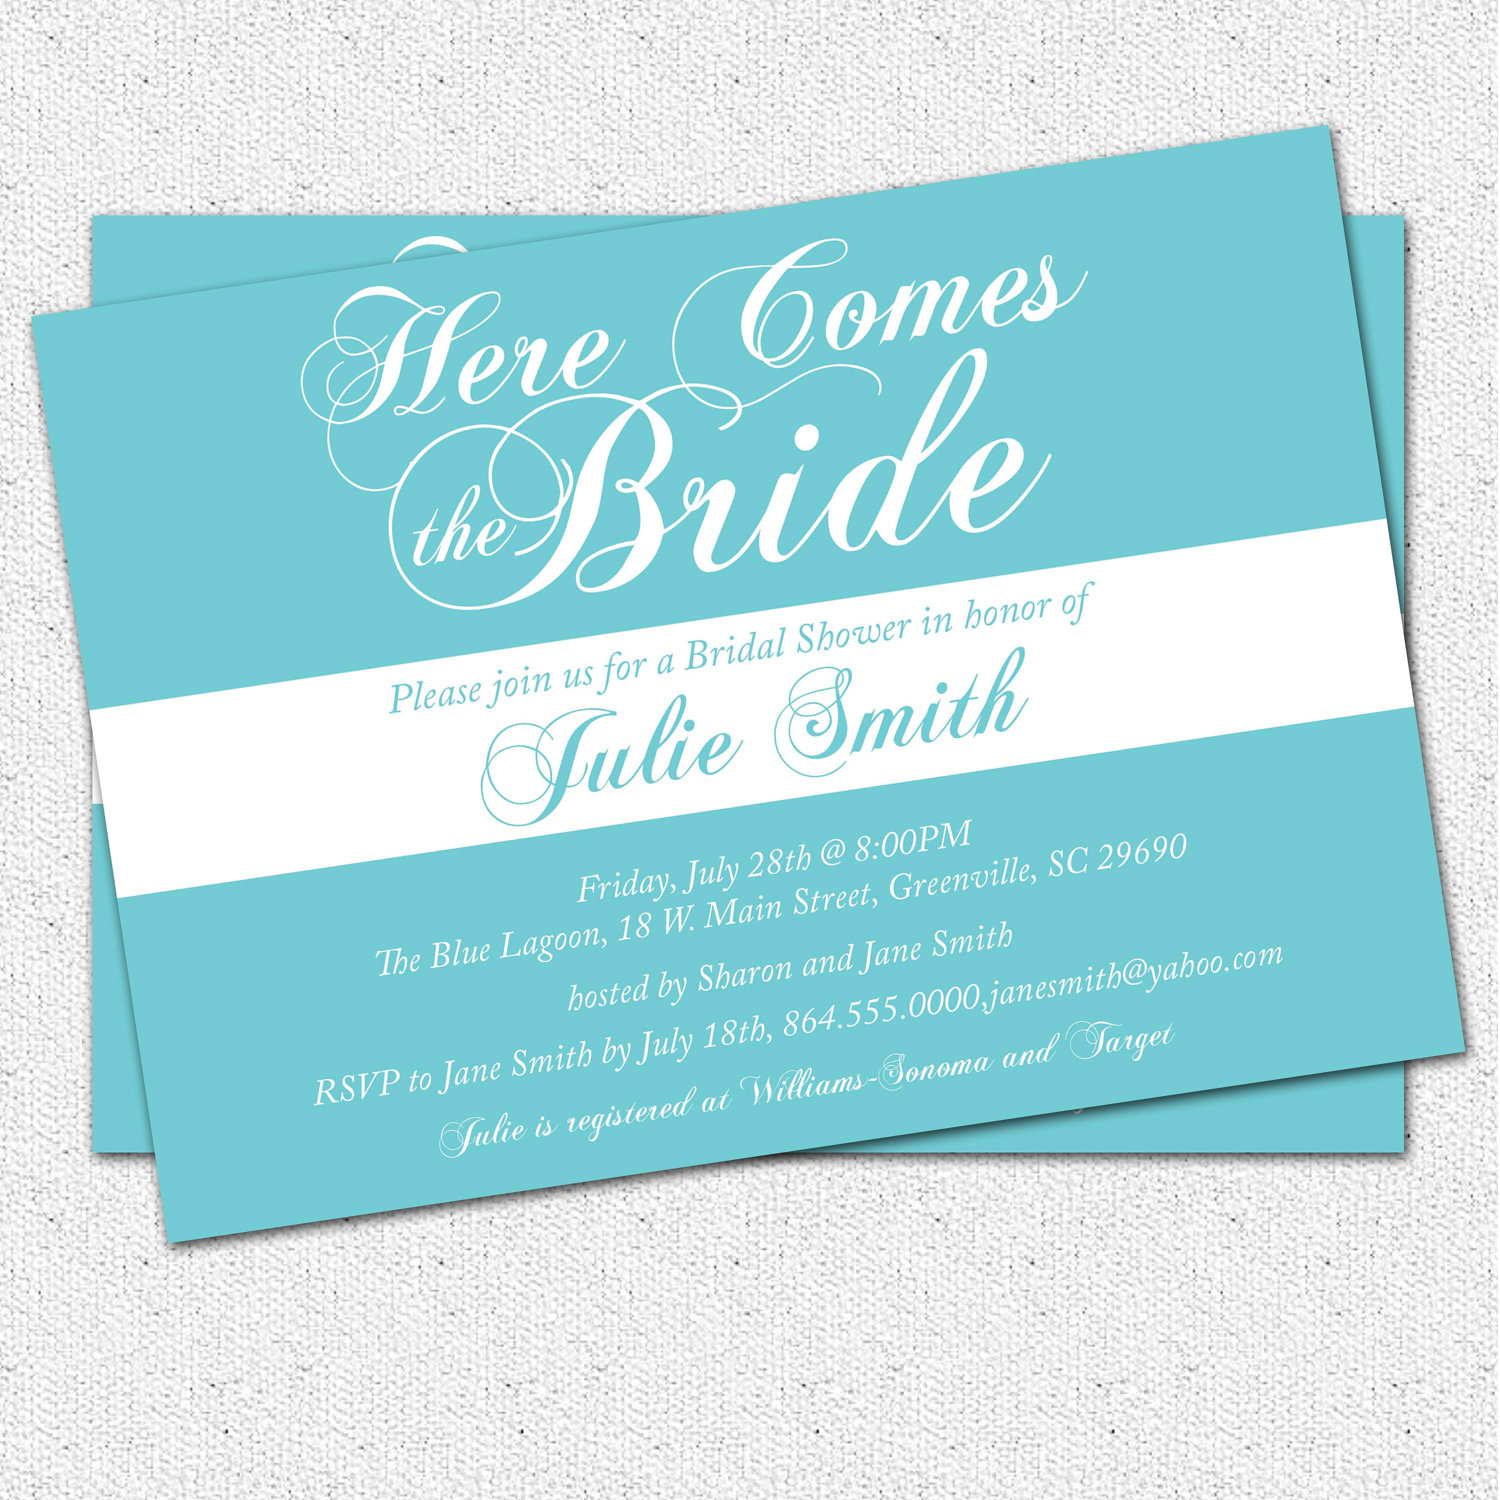 Bridal shower invitation calligraphy here comes the bride bridal shower invitation calligraphy here comes the bride personalized custom set of 10 filmwisefo Images